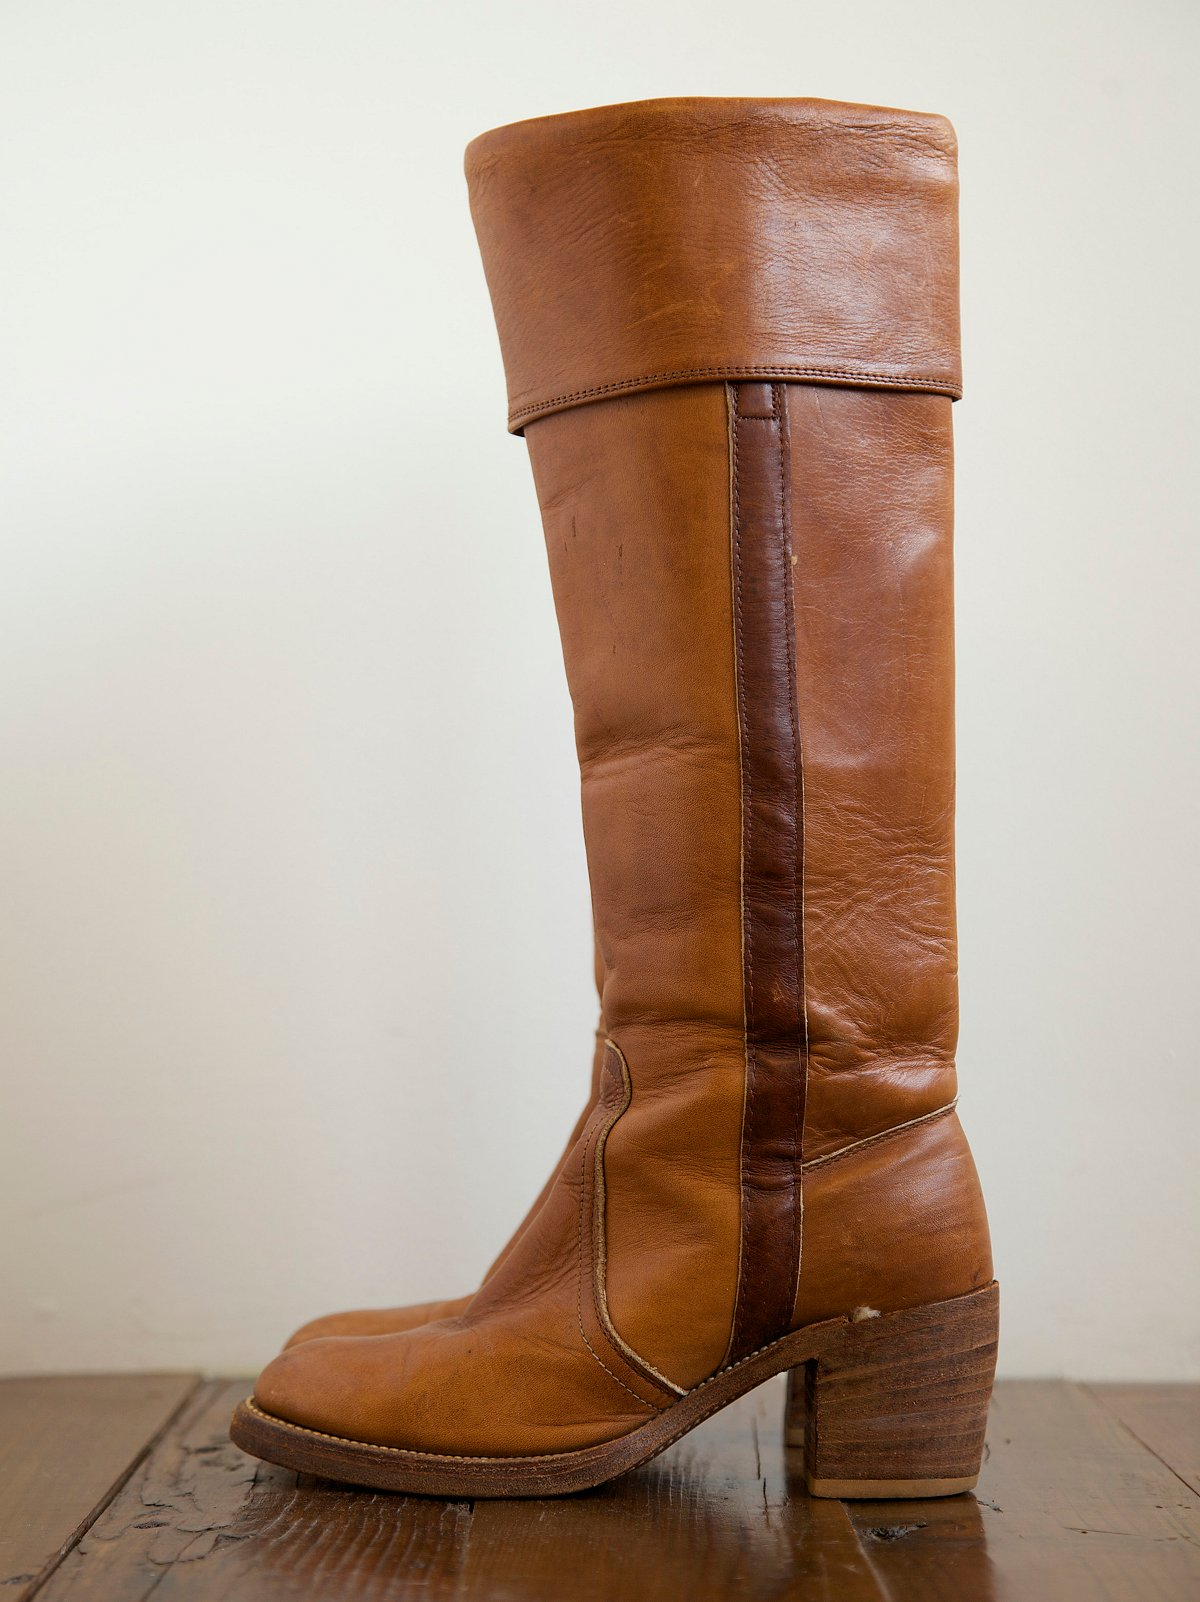 Vintage 1960s Tall Frye Boots